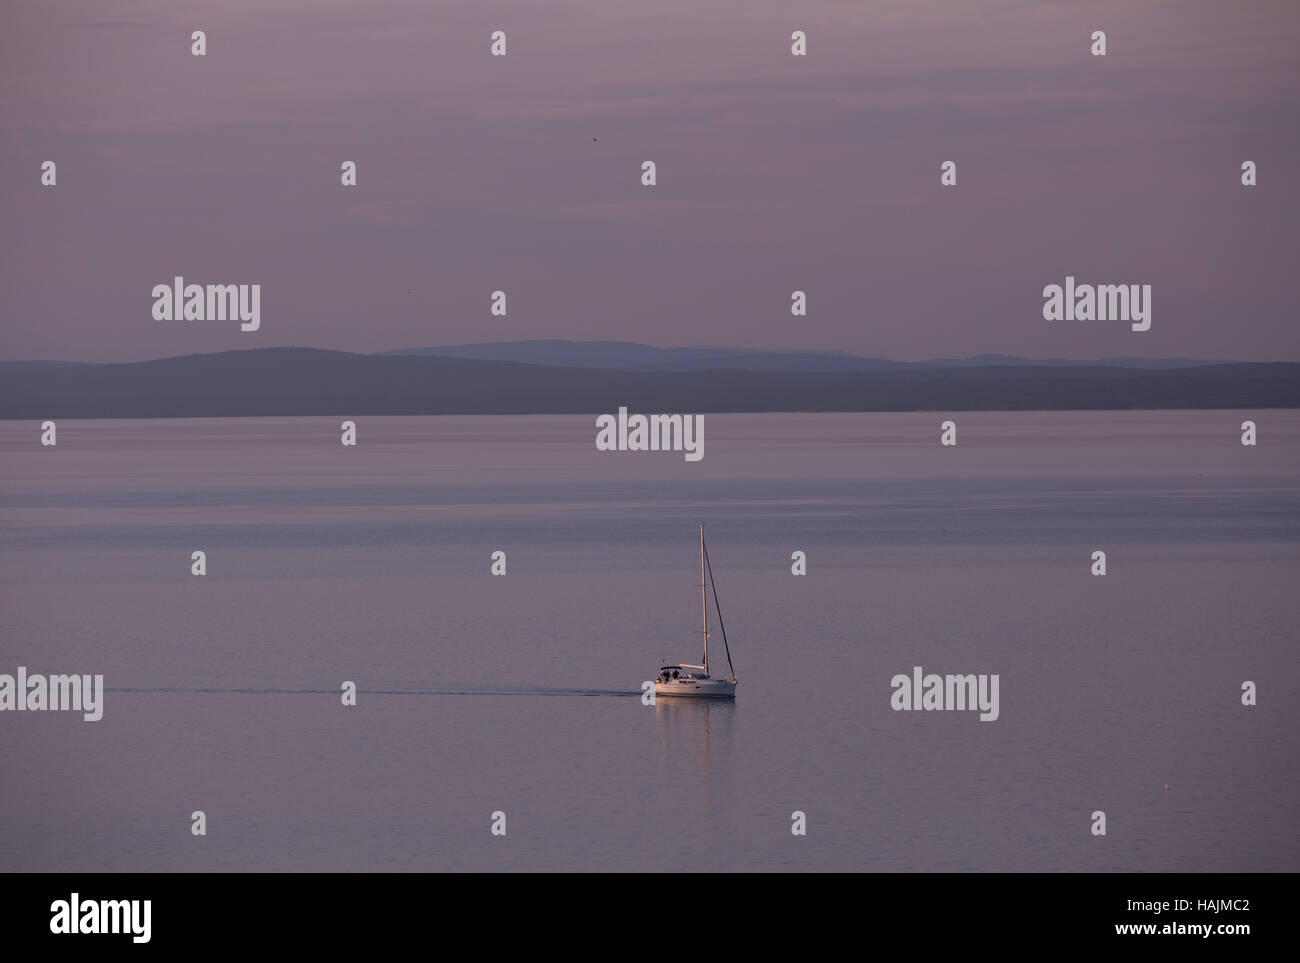 Sunset afterglow at dusk over Kvarner Gulf, Losinj, Croatia. - Stock Image